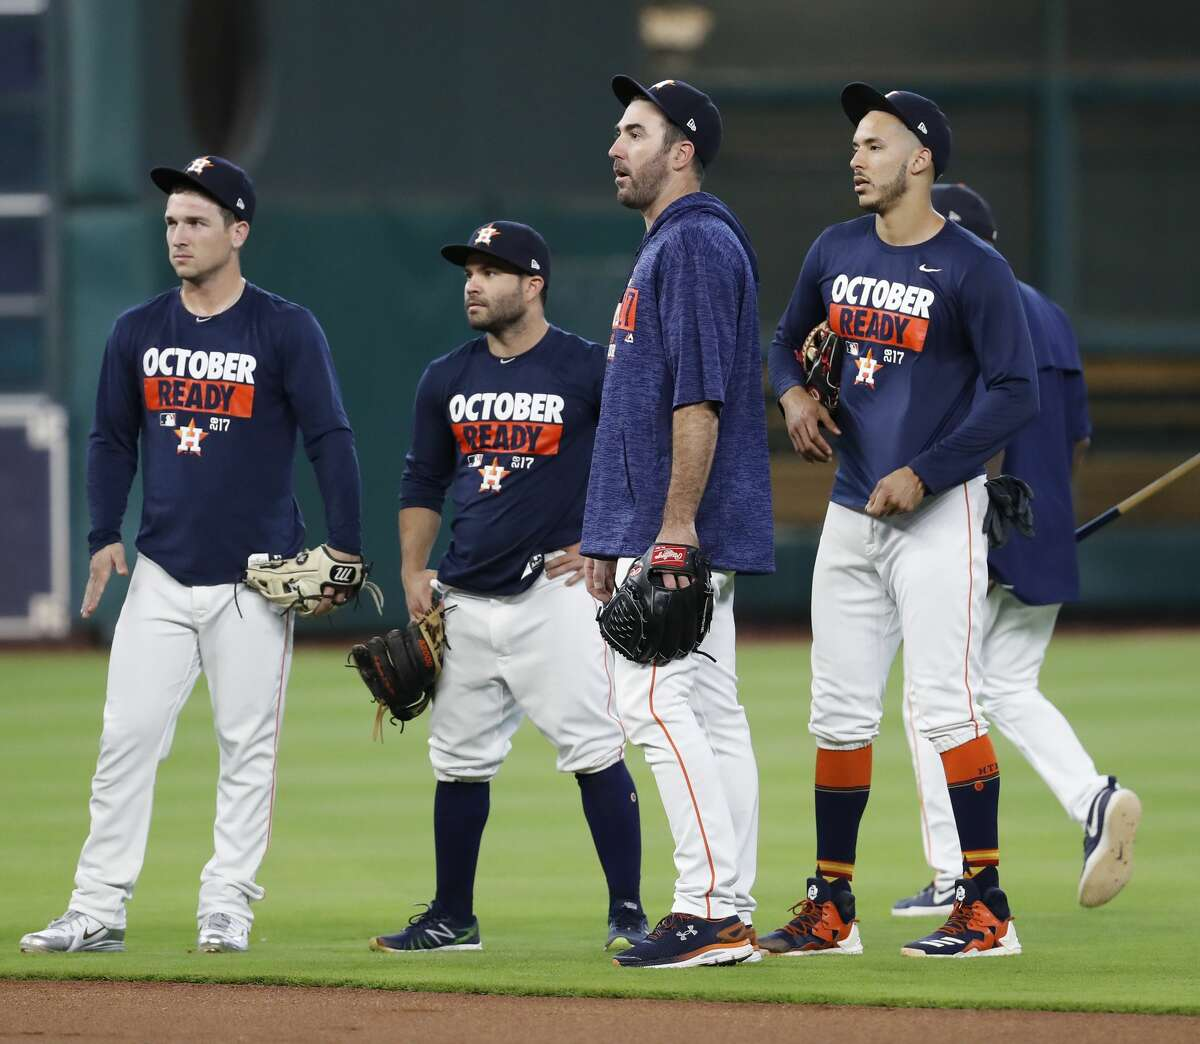 Houston Astros pitcher Justin Verlander chats with Carlos Correa, Jose Altuve, and Alex Bregman during batting practice at Minute Maid Park, Wednesday, Oct. 4, 2017, in Houston, as they prepare to take on the Boston Red Sox in the ALDS playoffs. ( Karen Warren / Houston Chronicle )